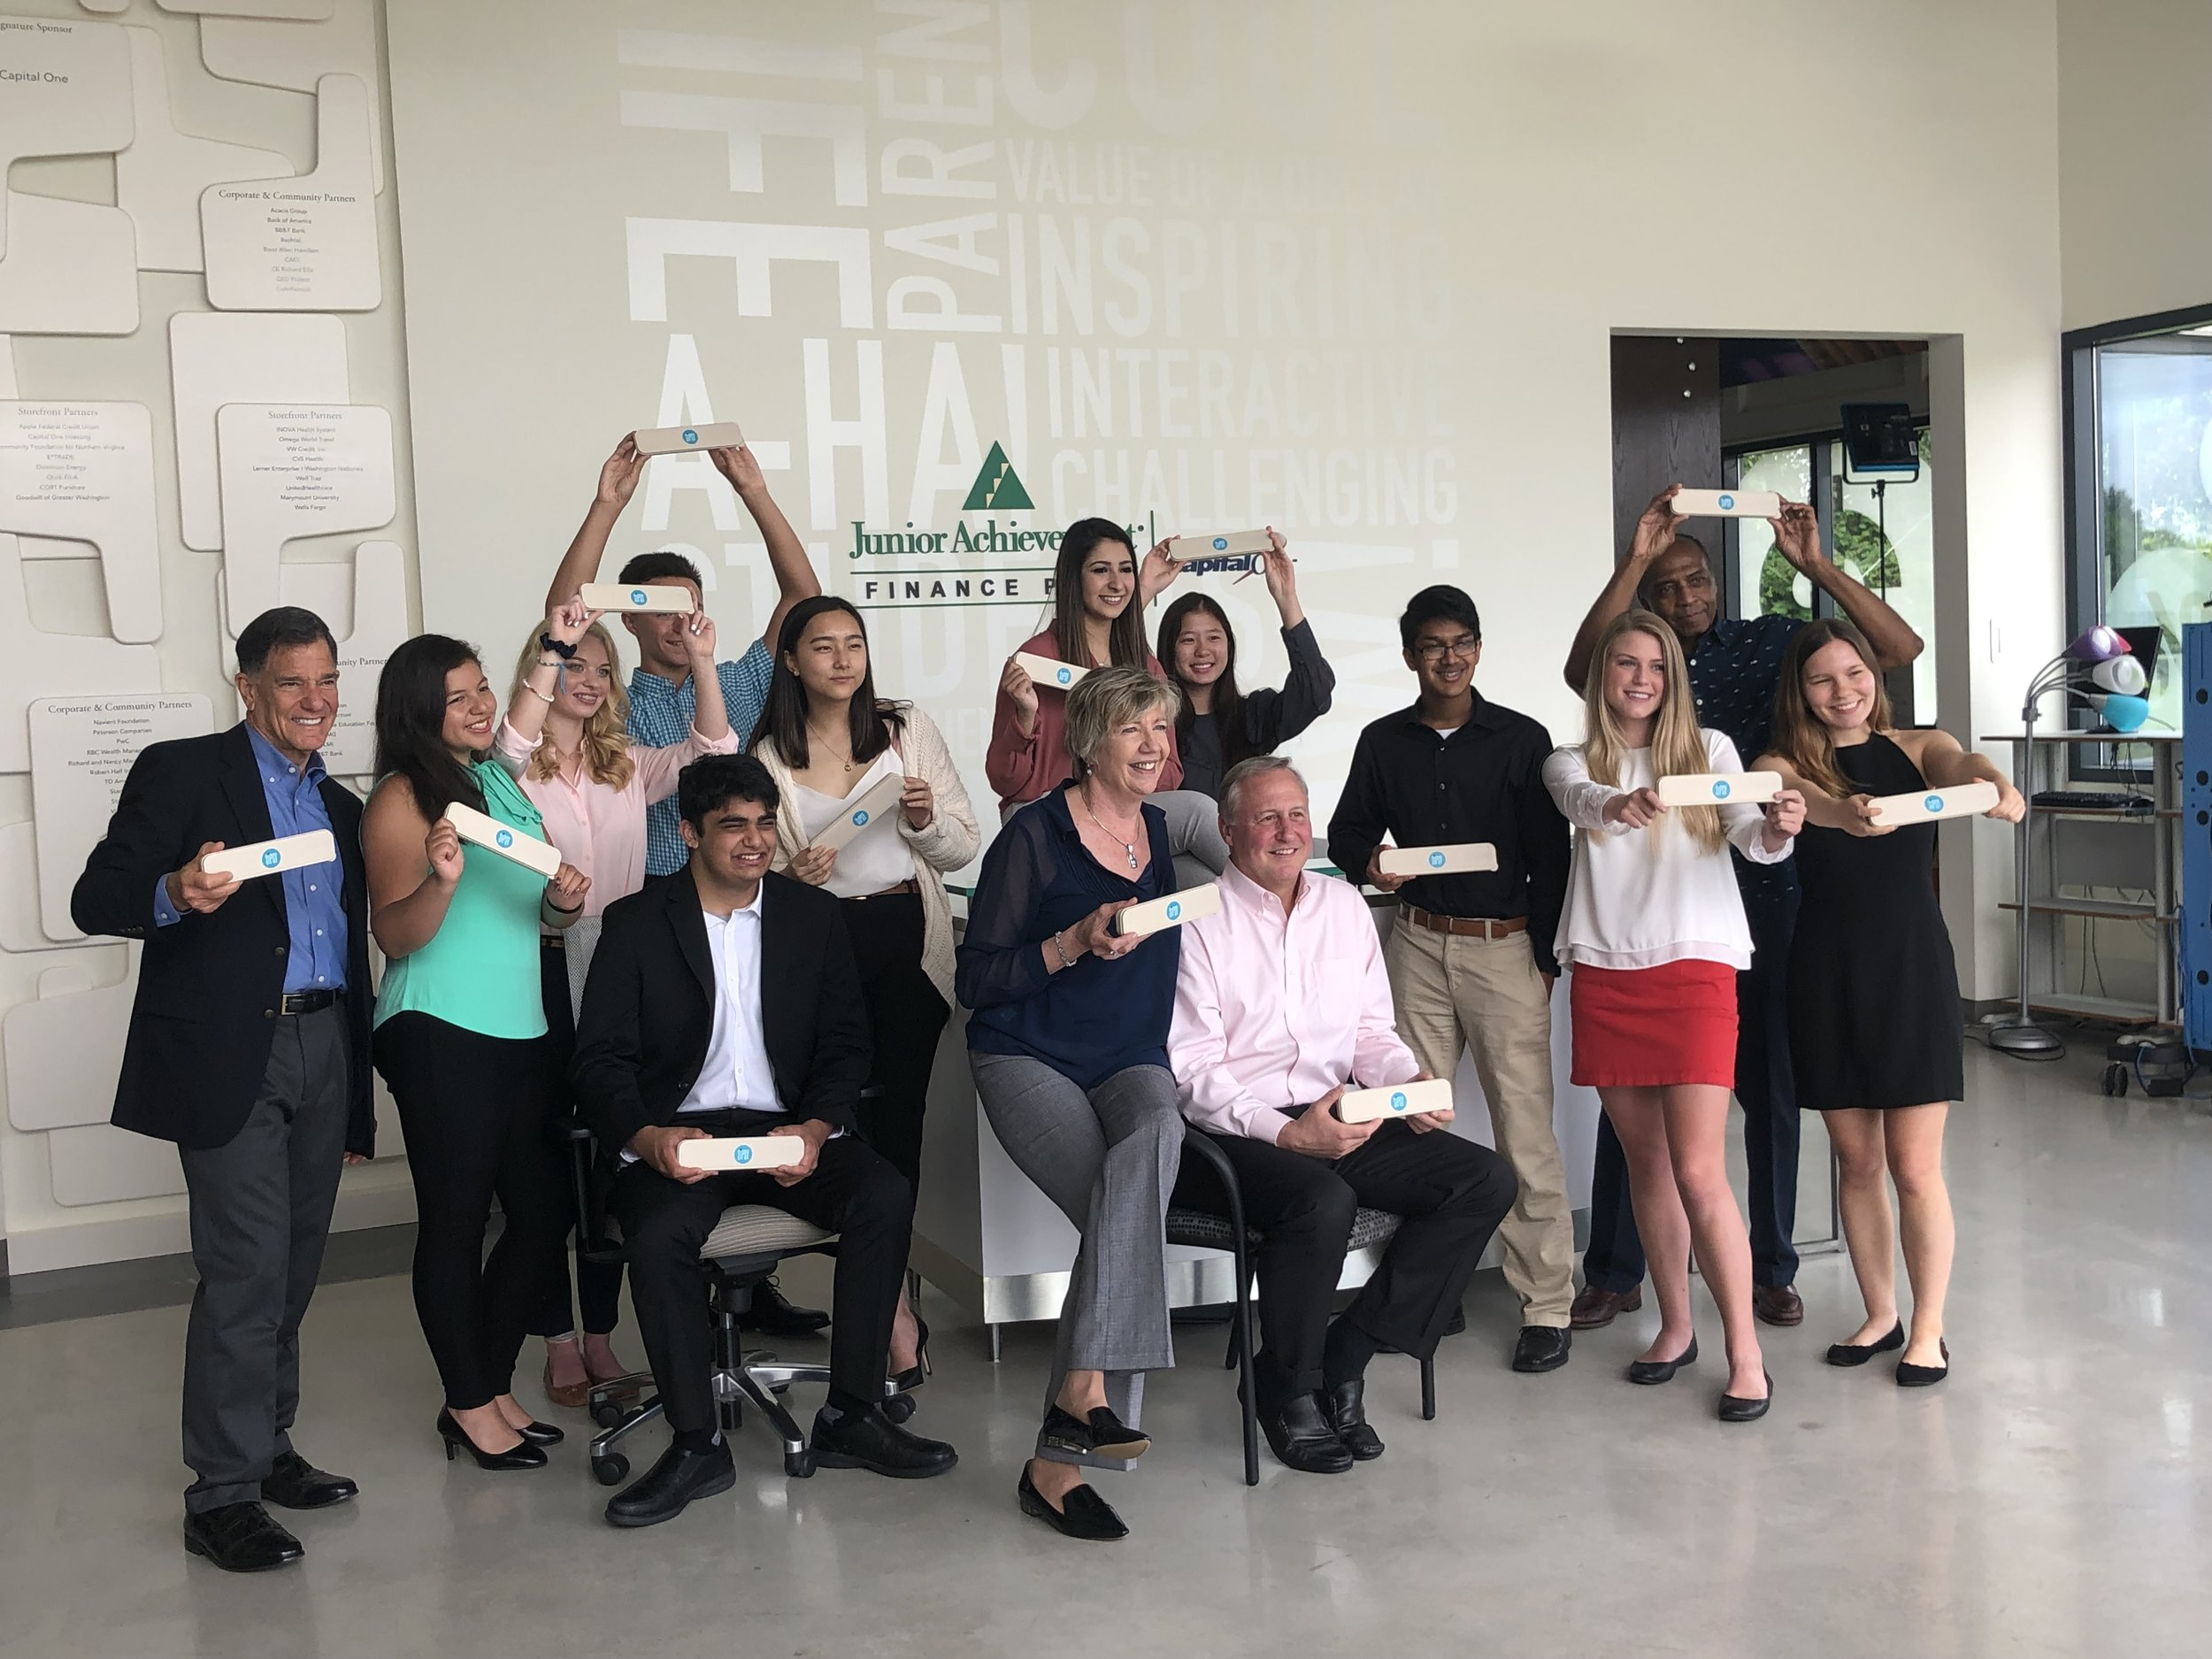 Team Sipsy and their volunteer mentors pose during a shoot with Northern Virginia Magazine.